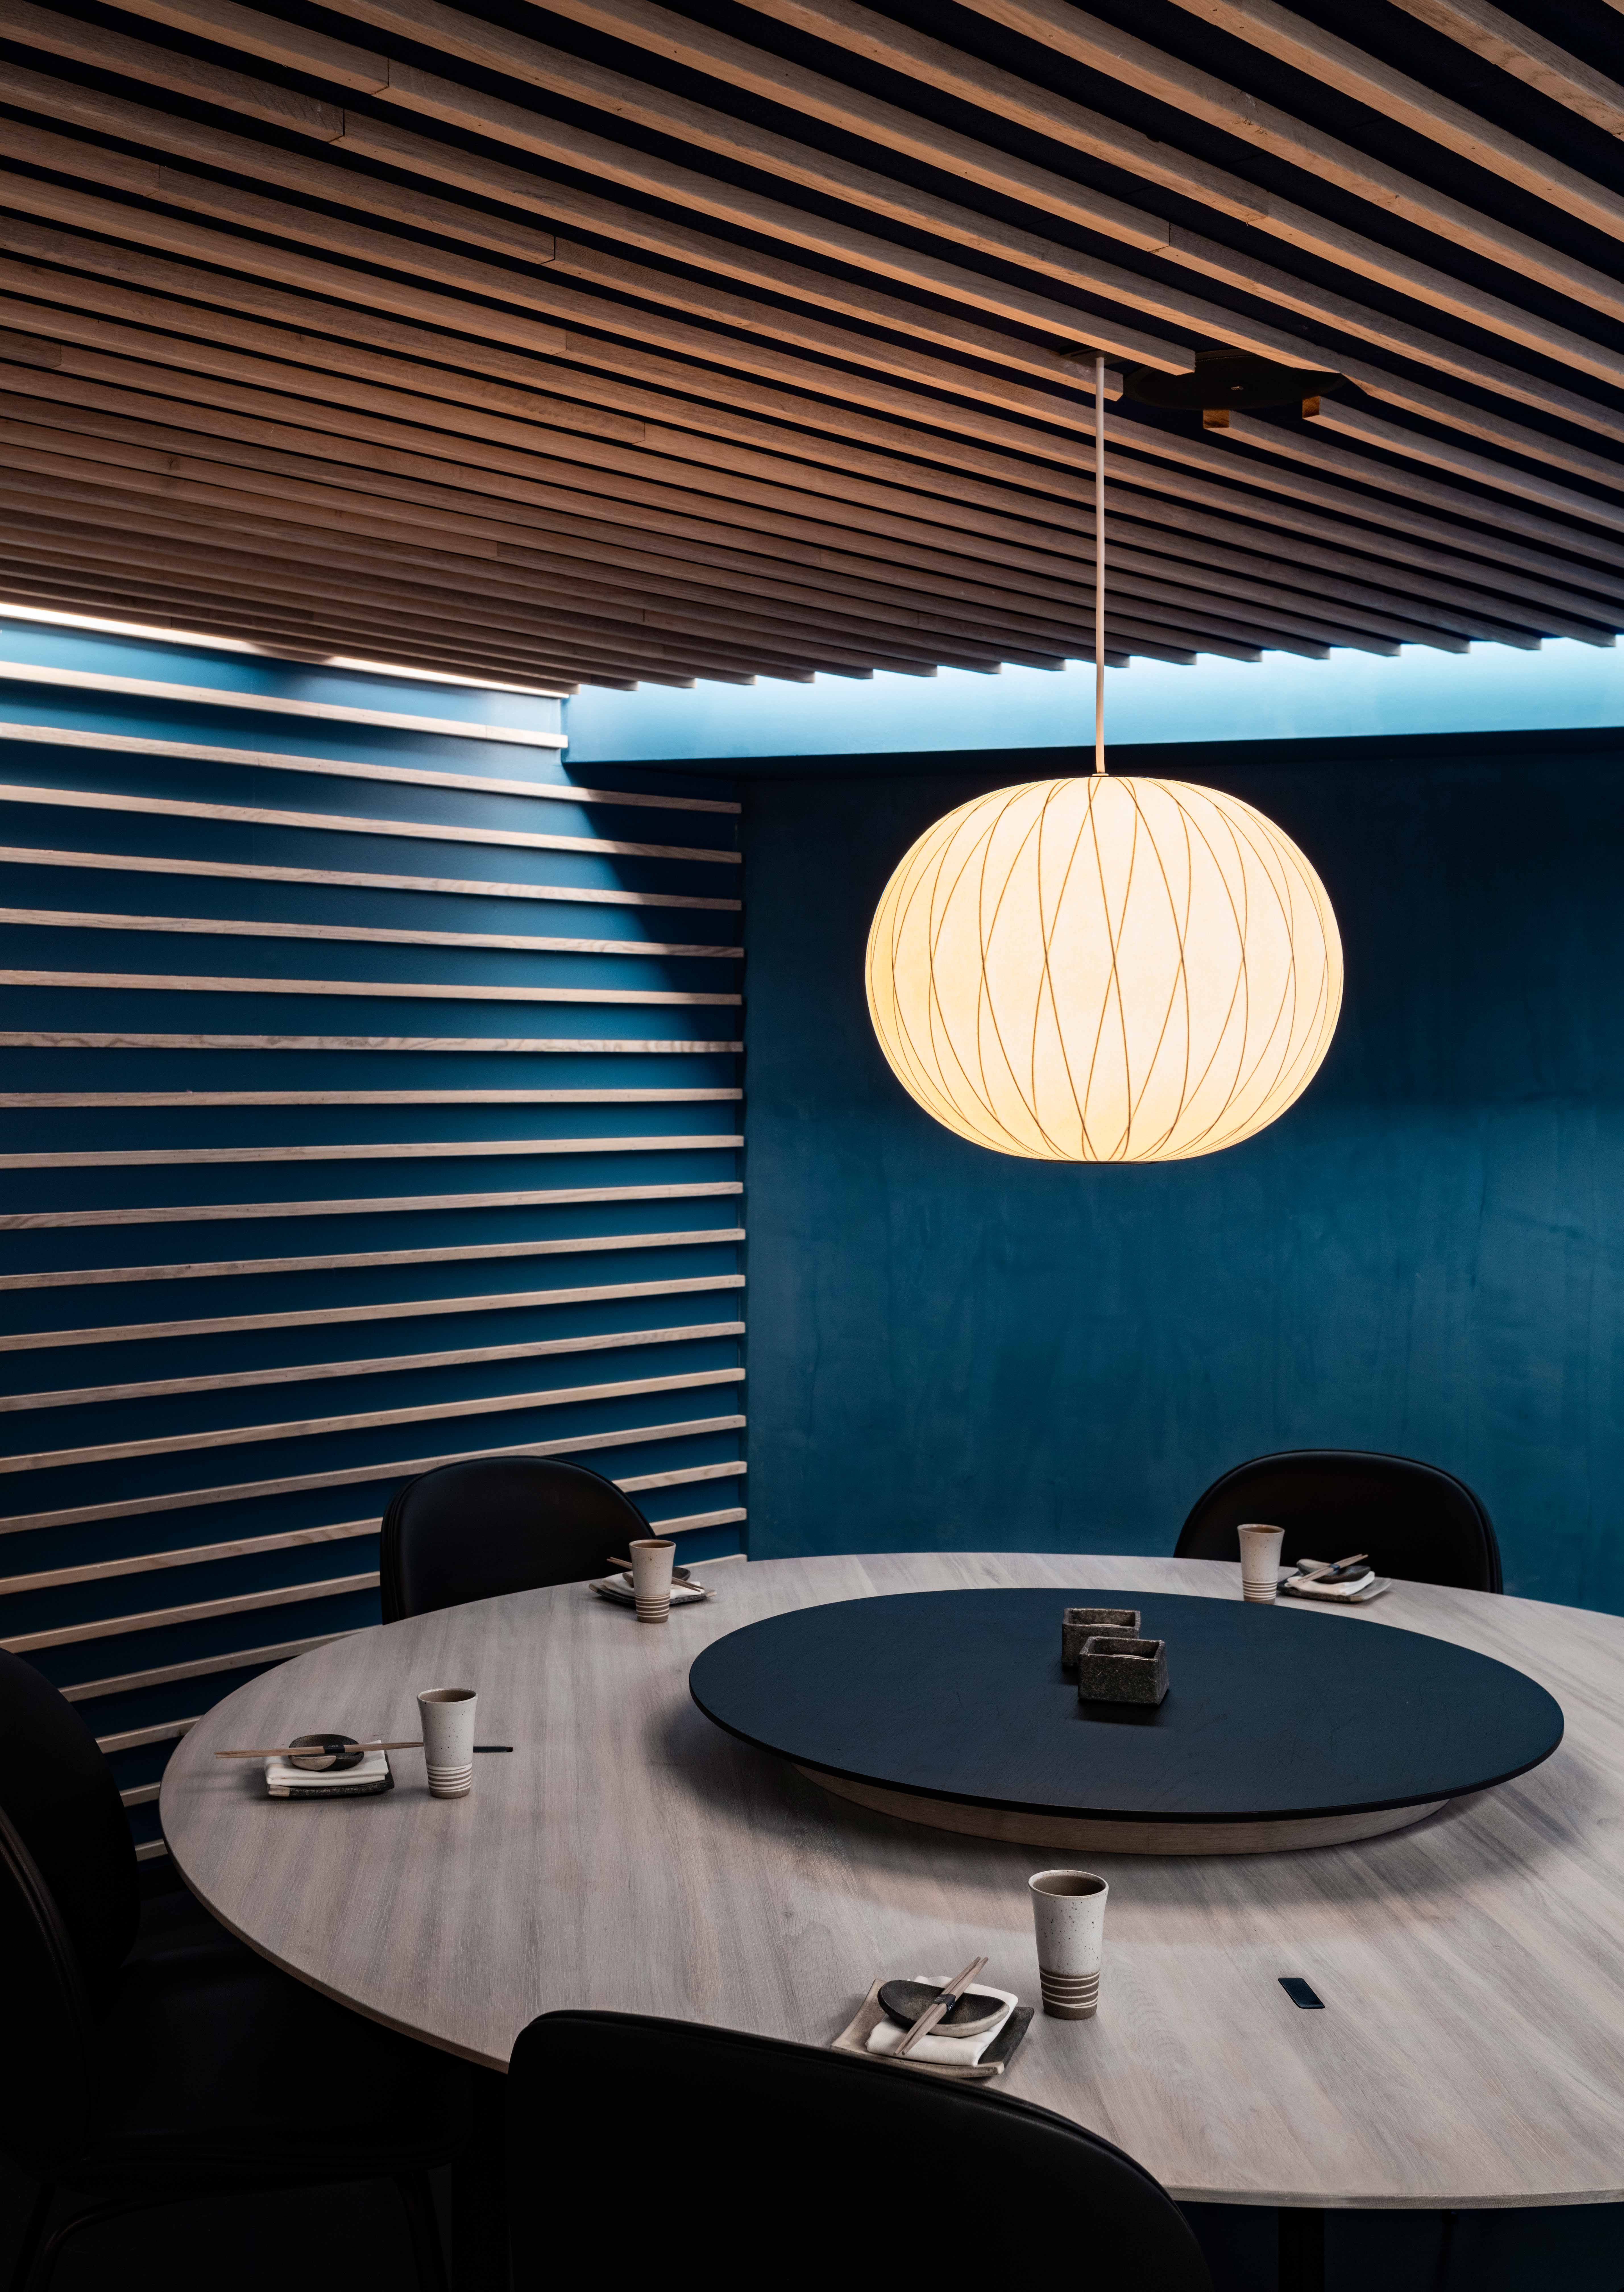 For The New Karma Sushi Restaurant In Aarhus, The Interior Design Department  Of Henning Larsen Architects Has Created An Interior Design With An Atu2026